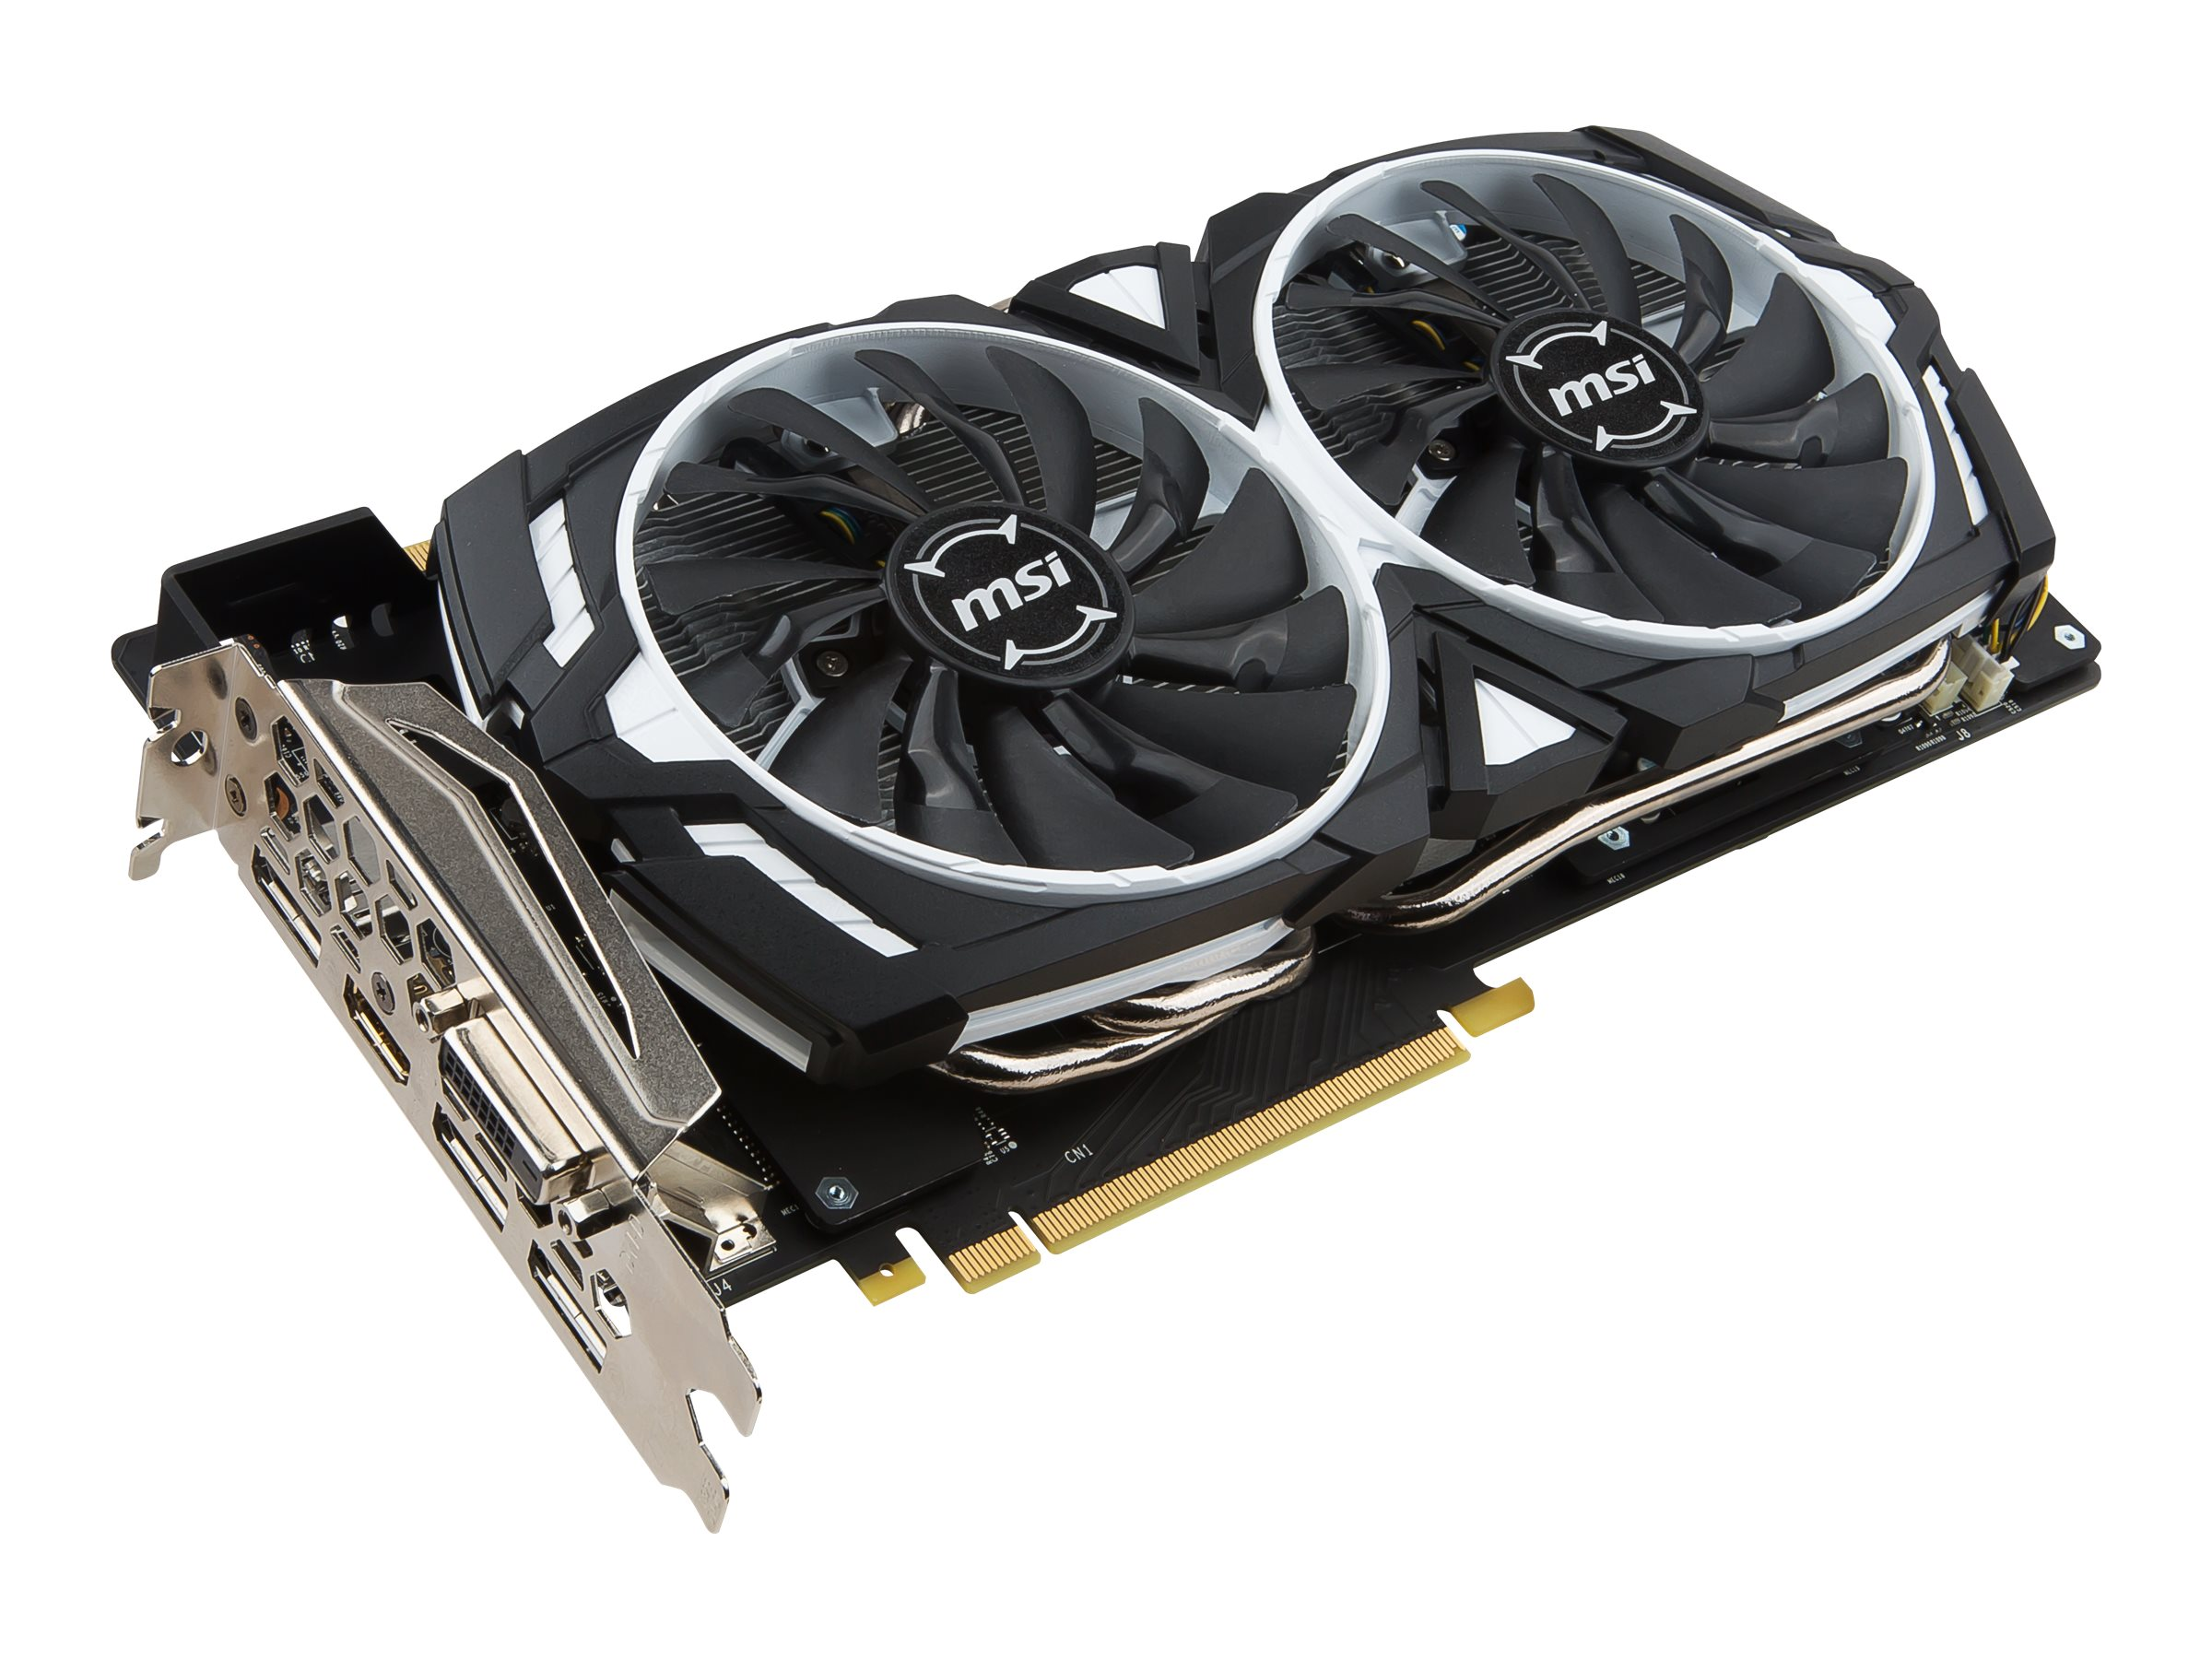 Microstar GeForce GTX 1070 Armor Overclocked Graphics Card, 8GB GDDR5, GTX 1070 ARMOR 8G OC